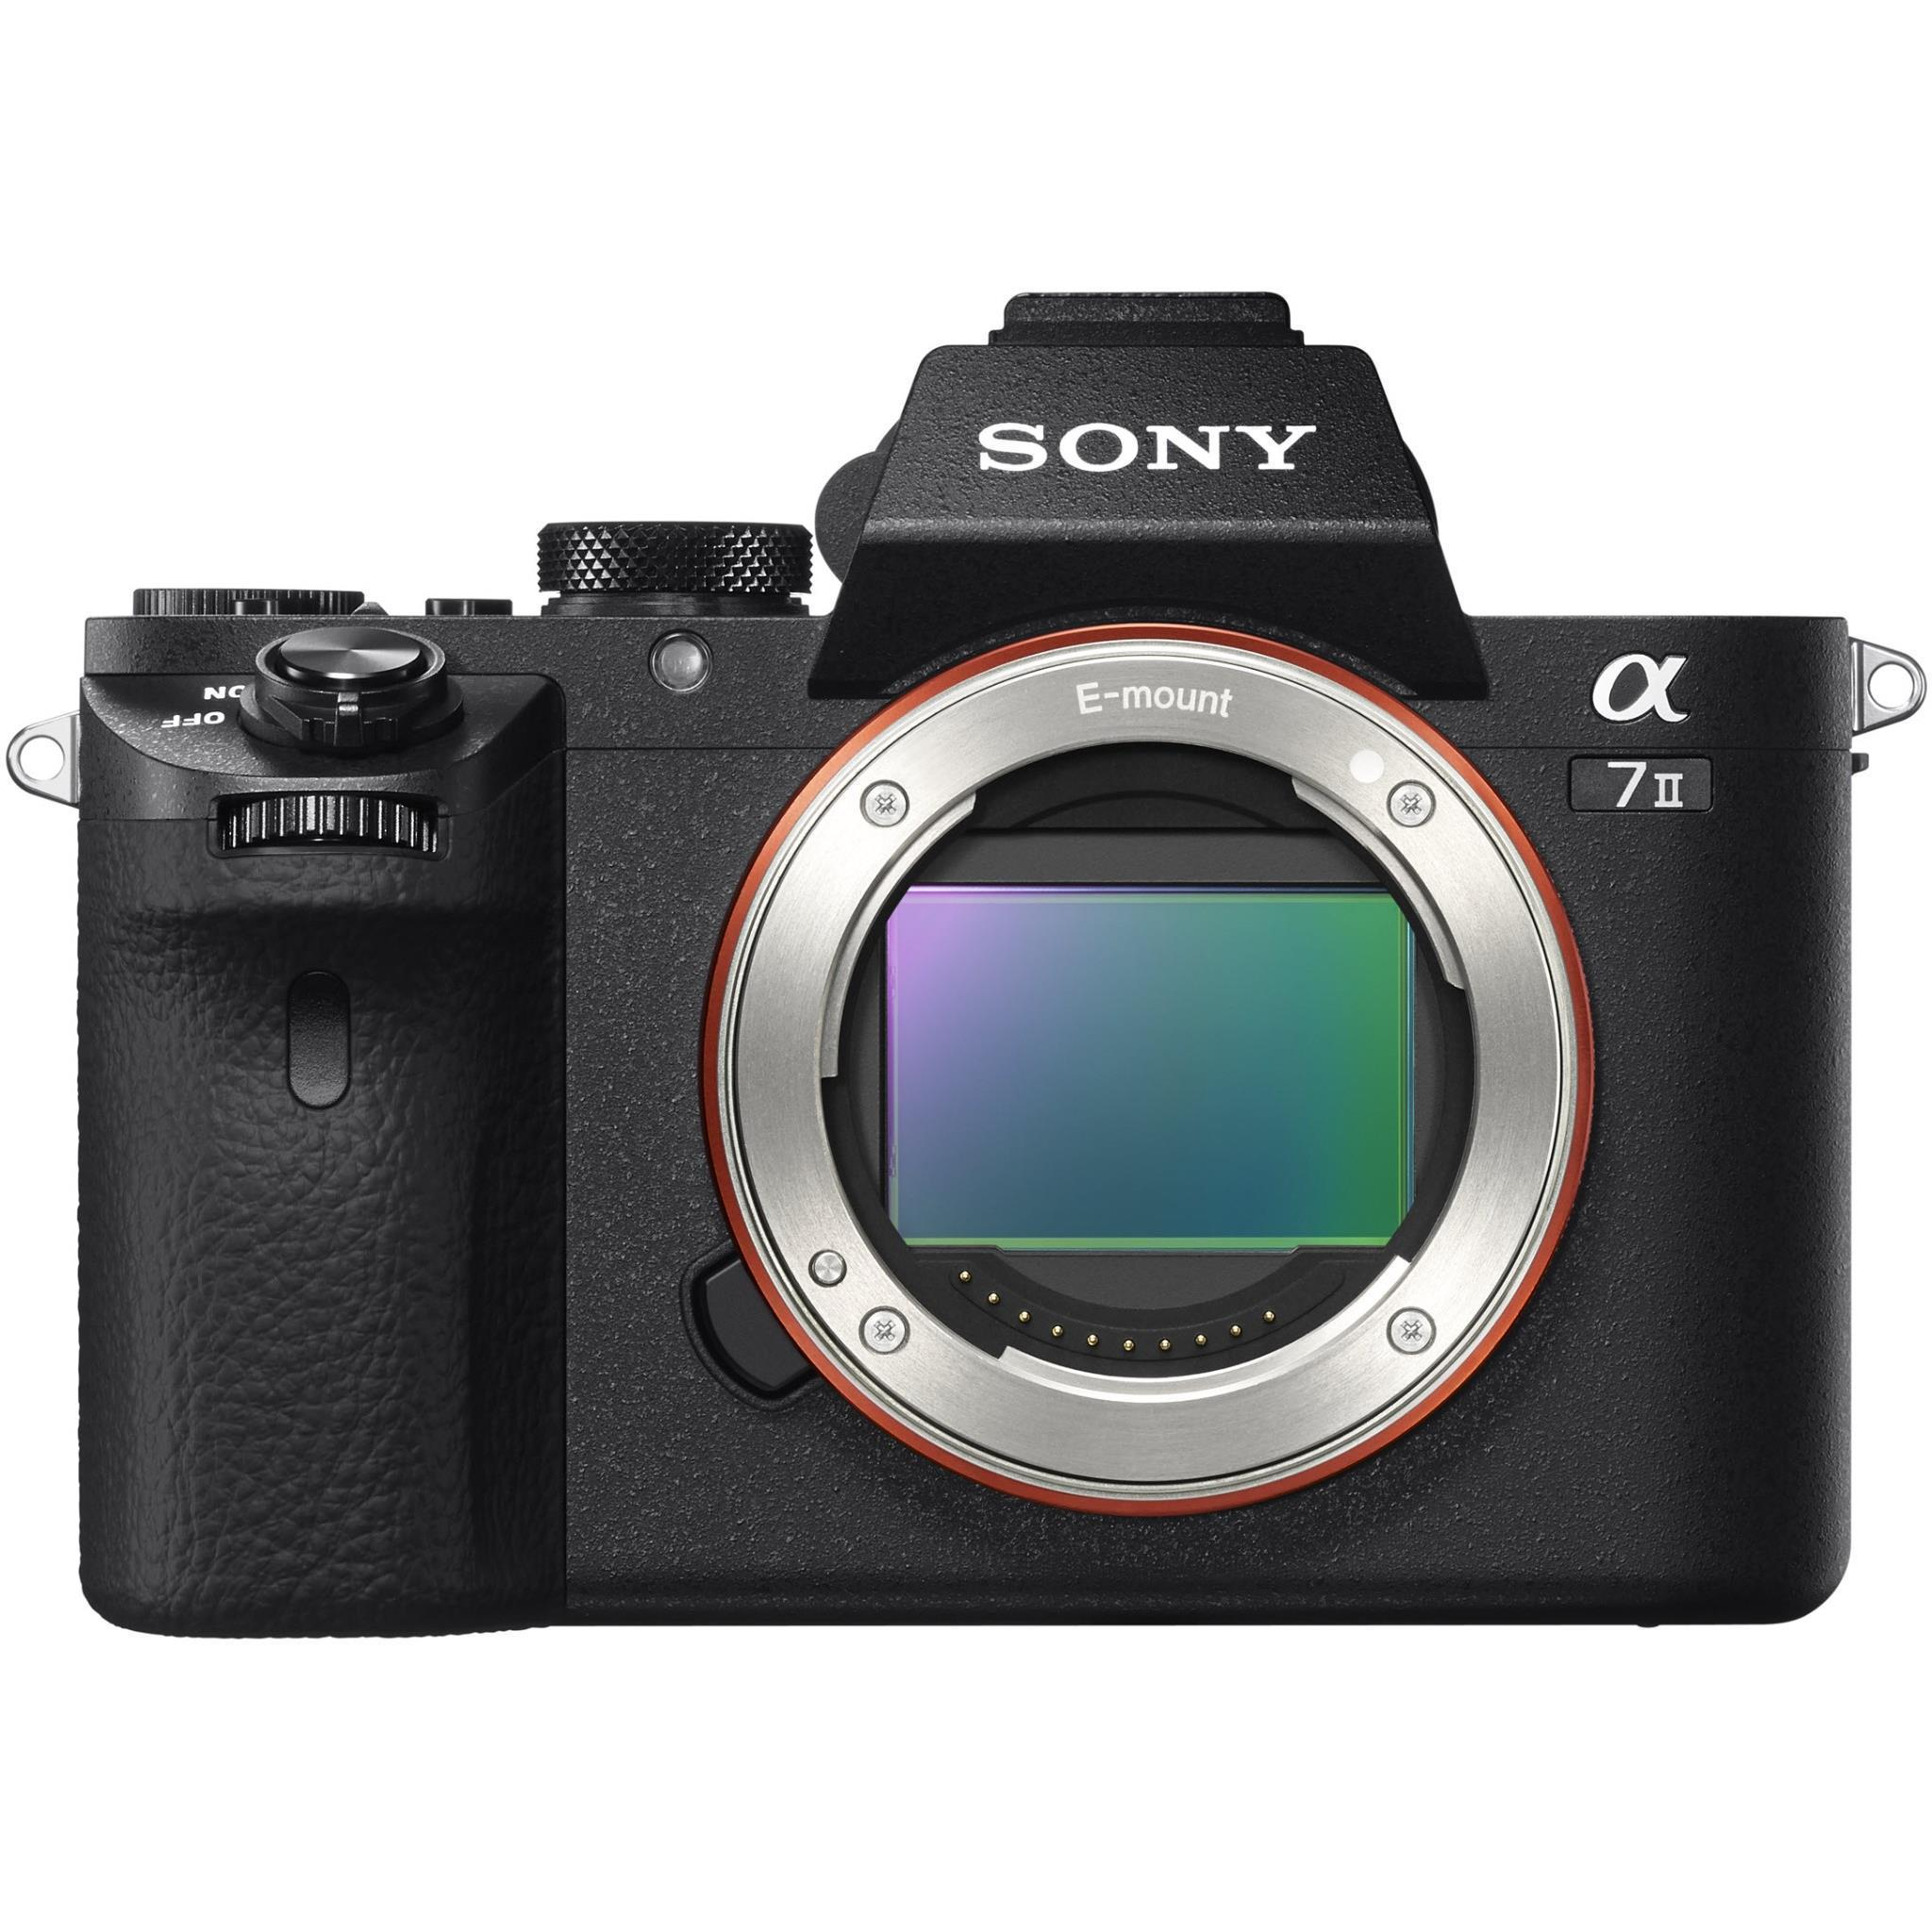 Sony Alpha A7 II Full Frame Mirrorless Camera (Body Only)